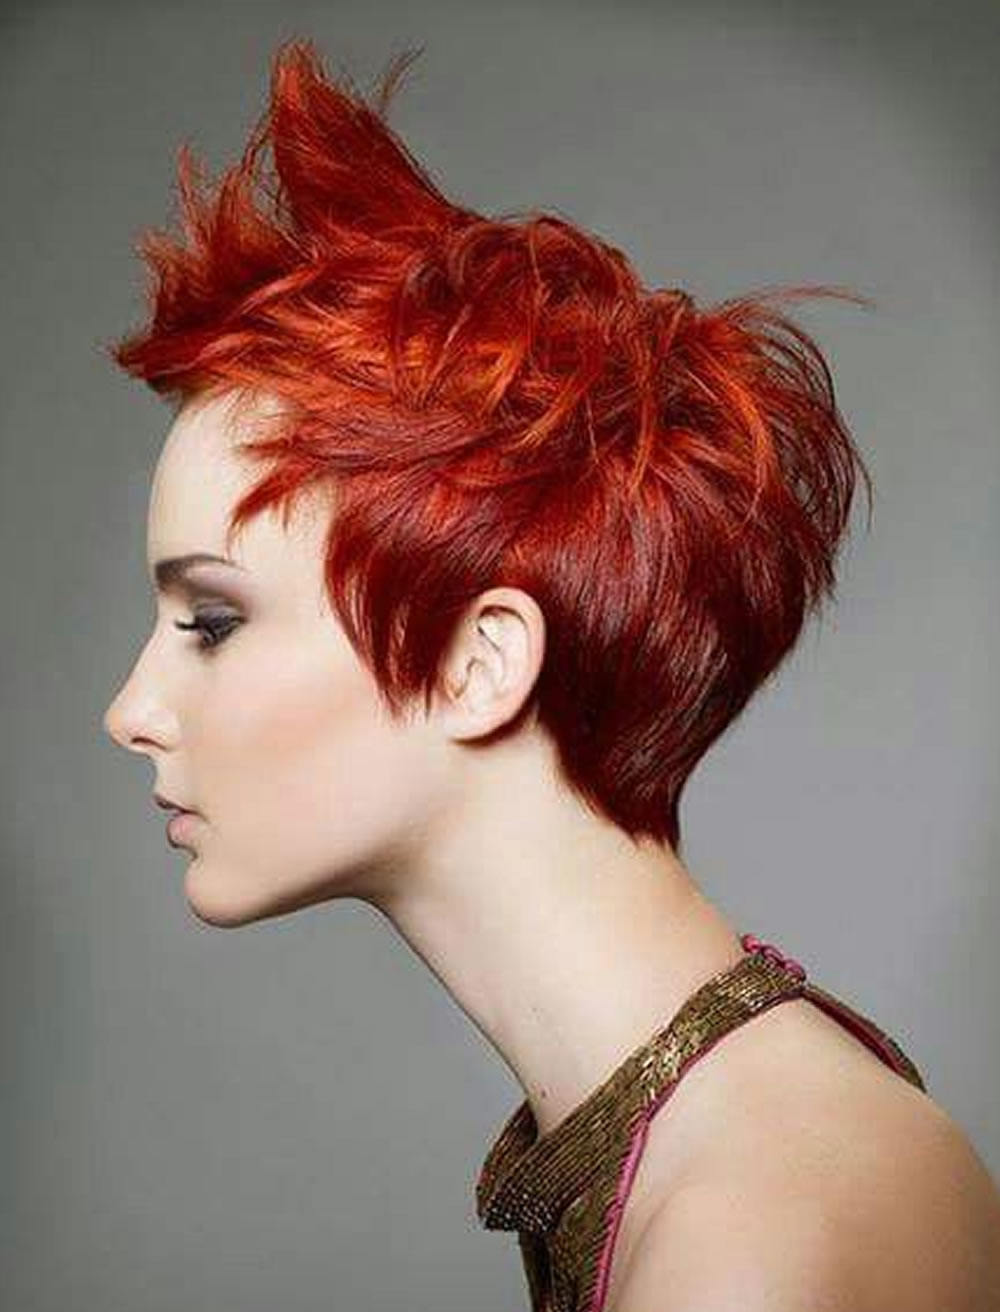 Red Messy Trend Short Hair For Young Girls – Hairstyles With Young Girl Short Hairstyles (View 20 of 25)